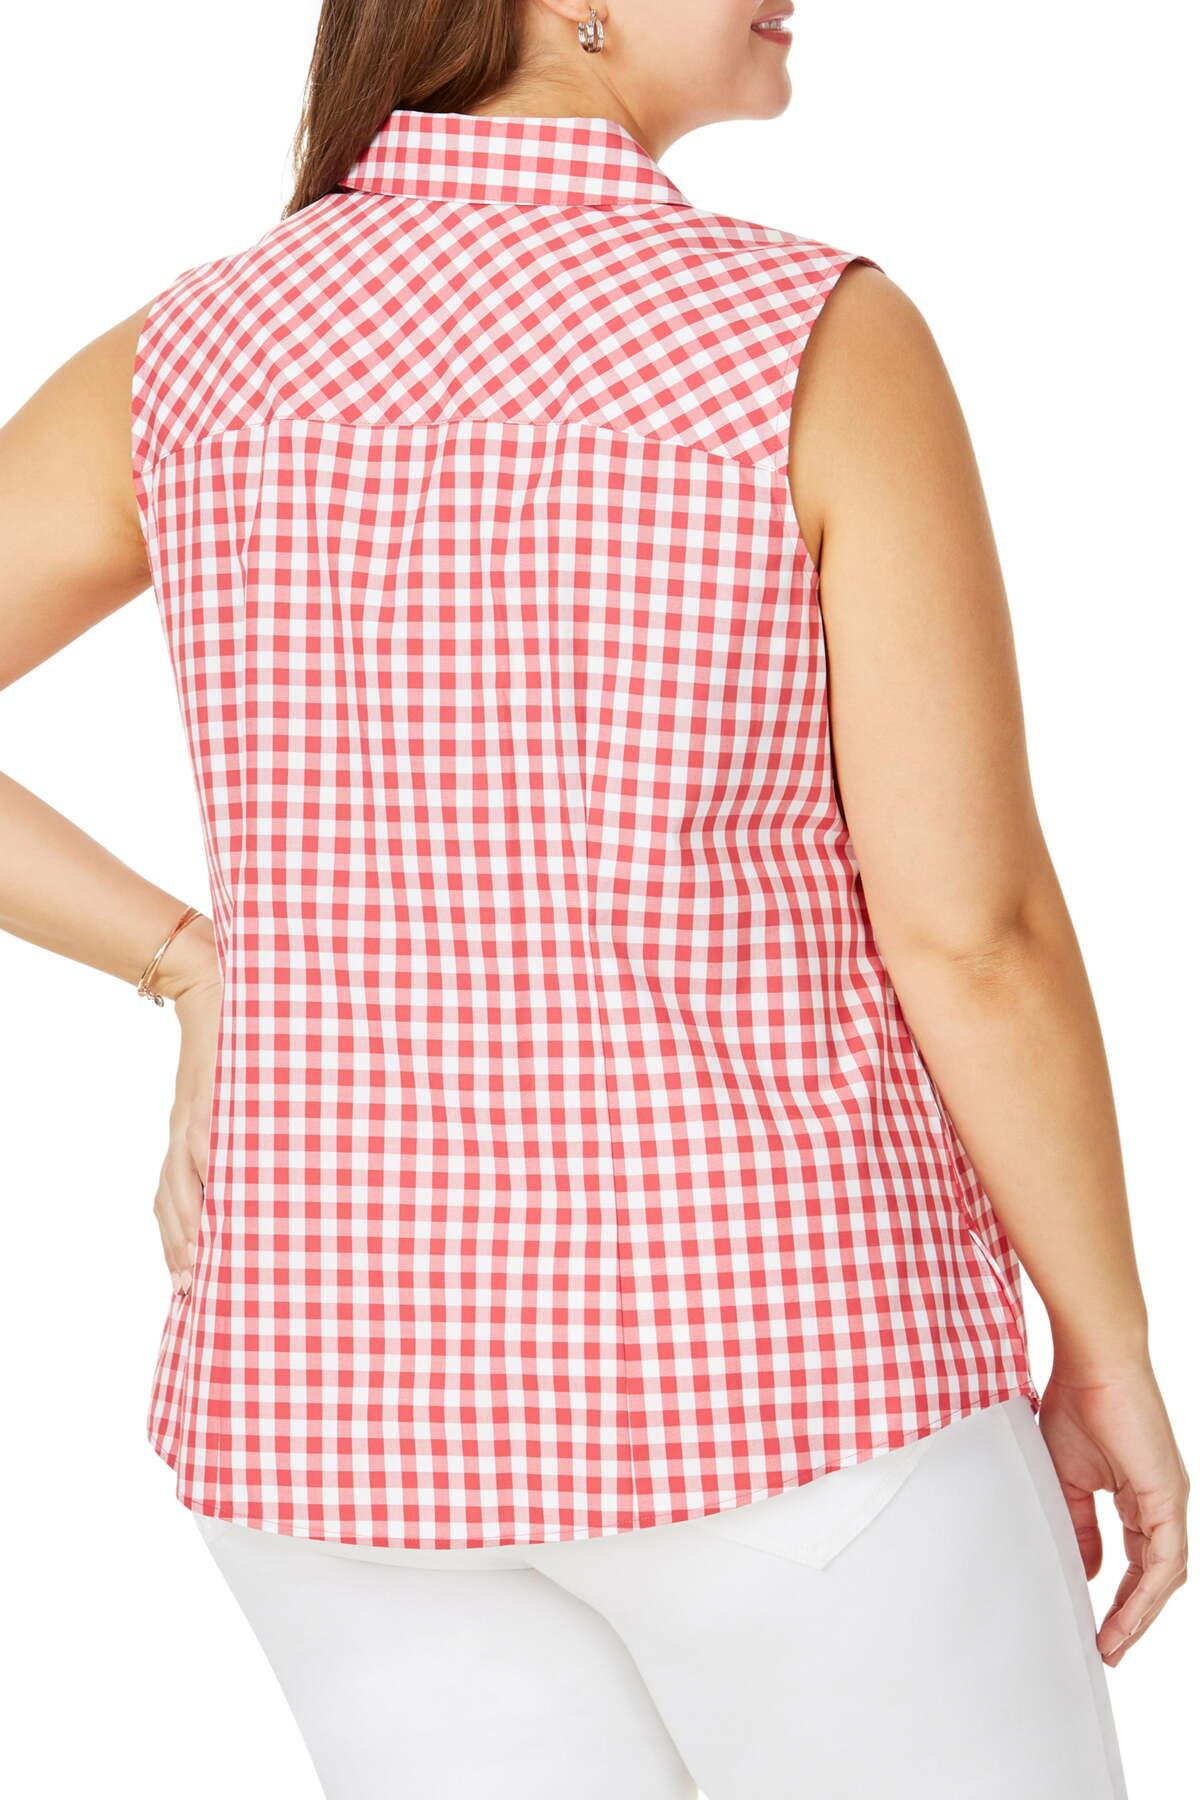 New Womens Plus Size Sleeveless Pintuck Front Ruched Back 100/% Cotton Blouse Top